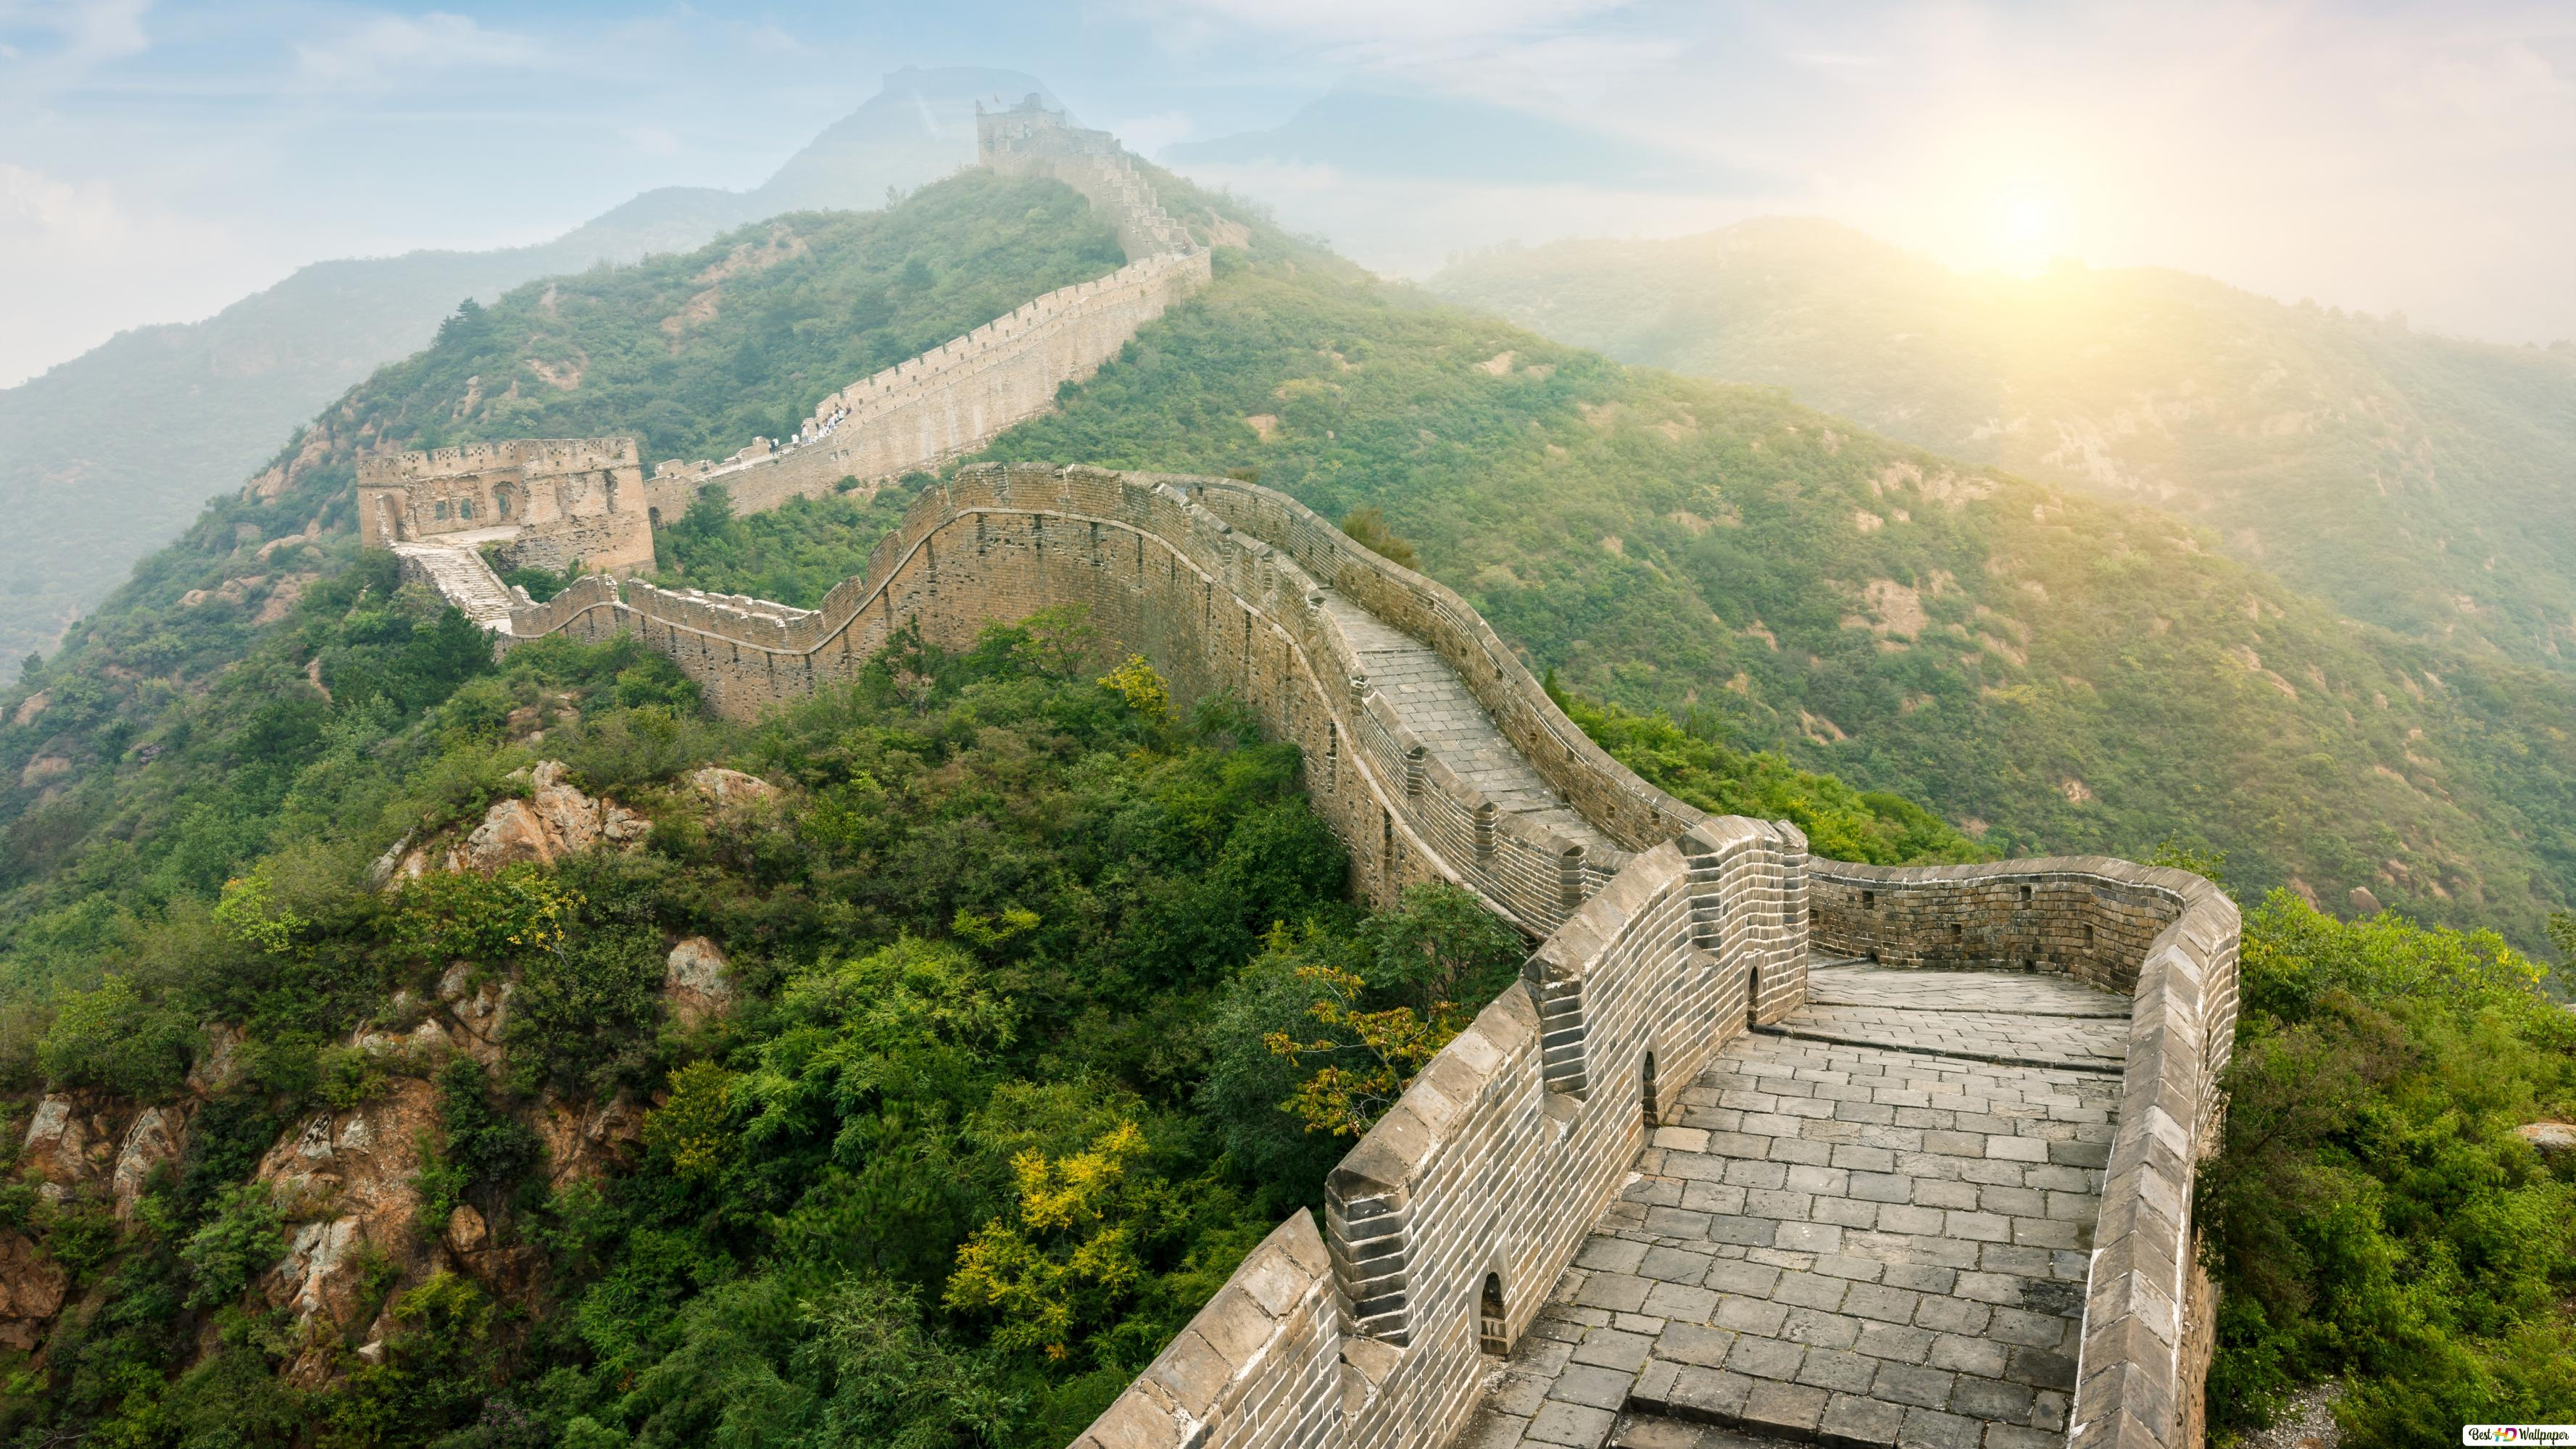 Worlds 7 Wonder The Great Wall Of China Hd Wallpaper Download